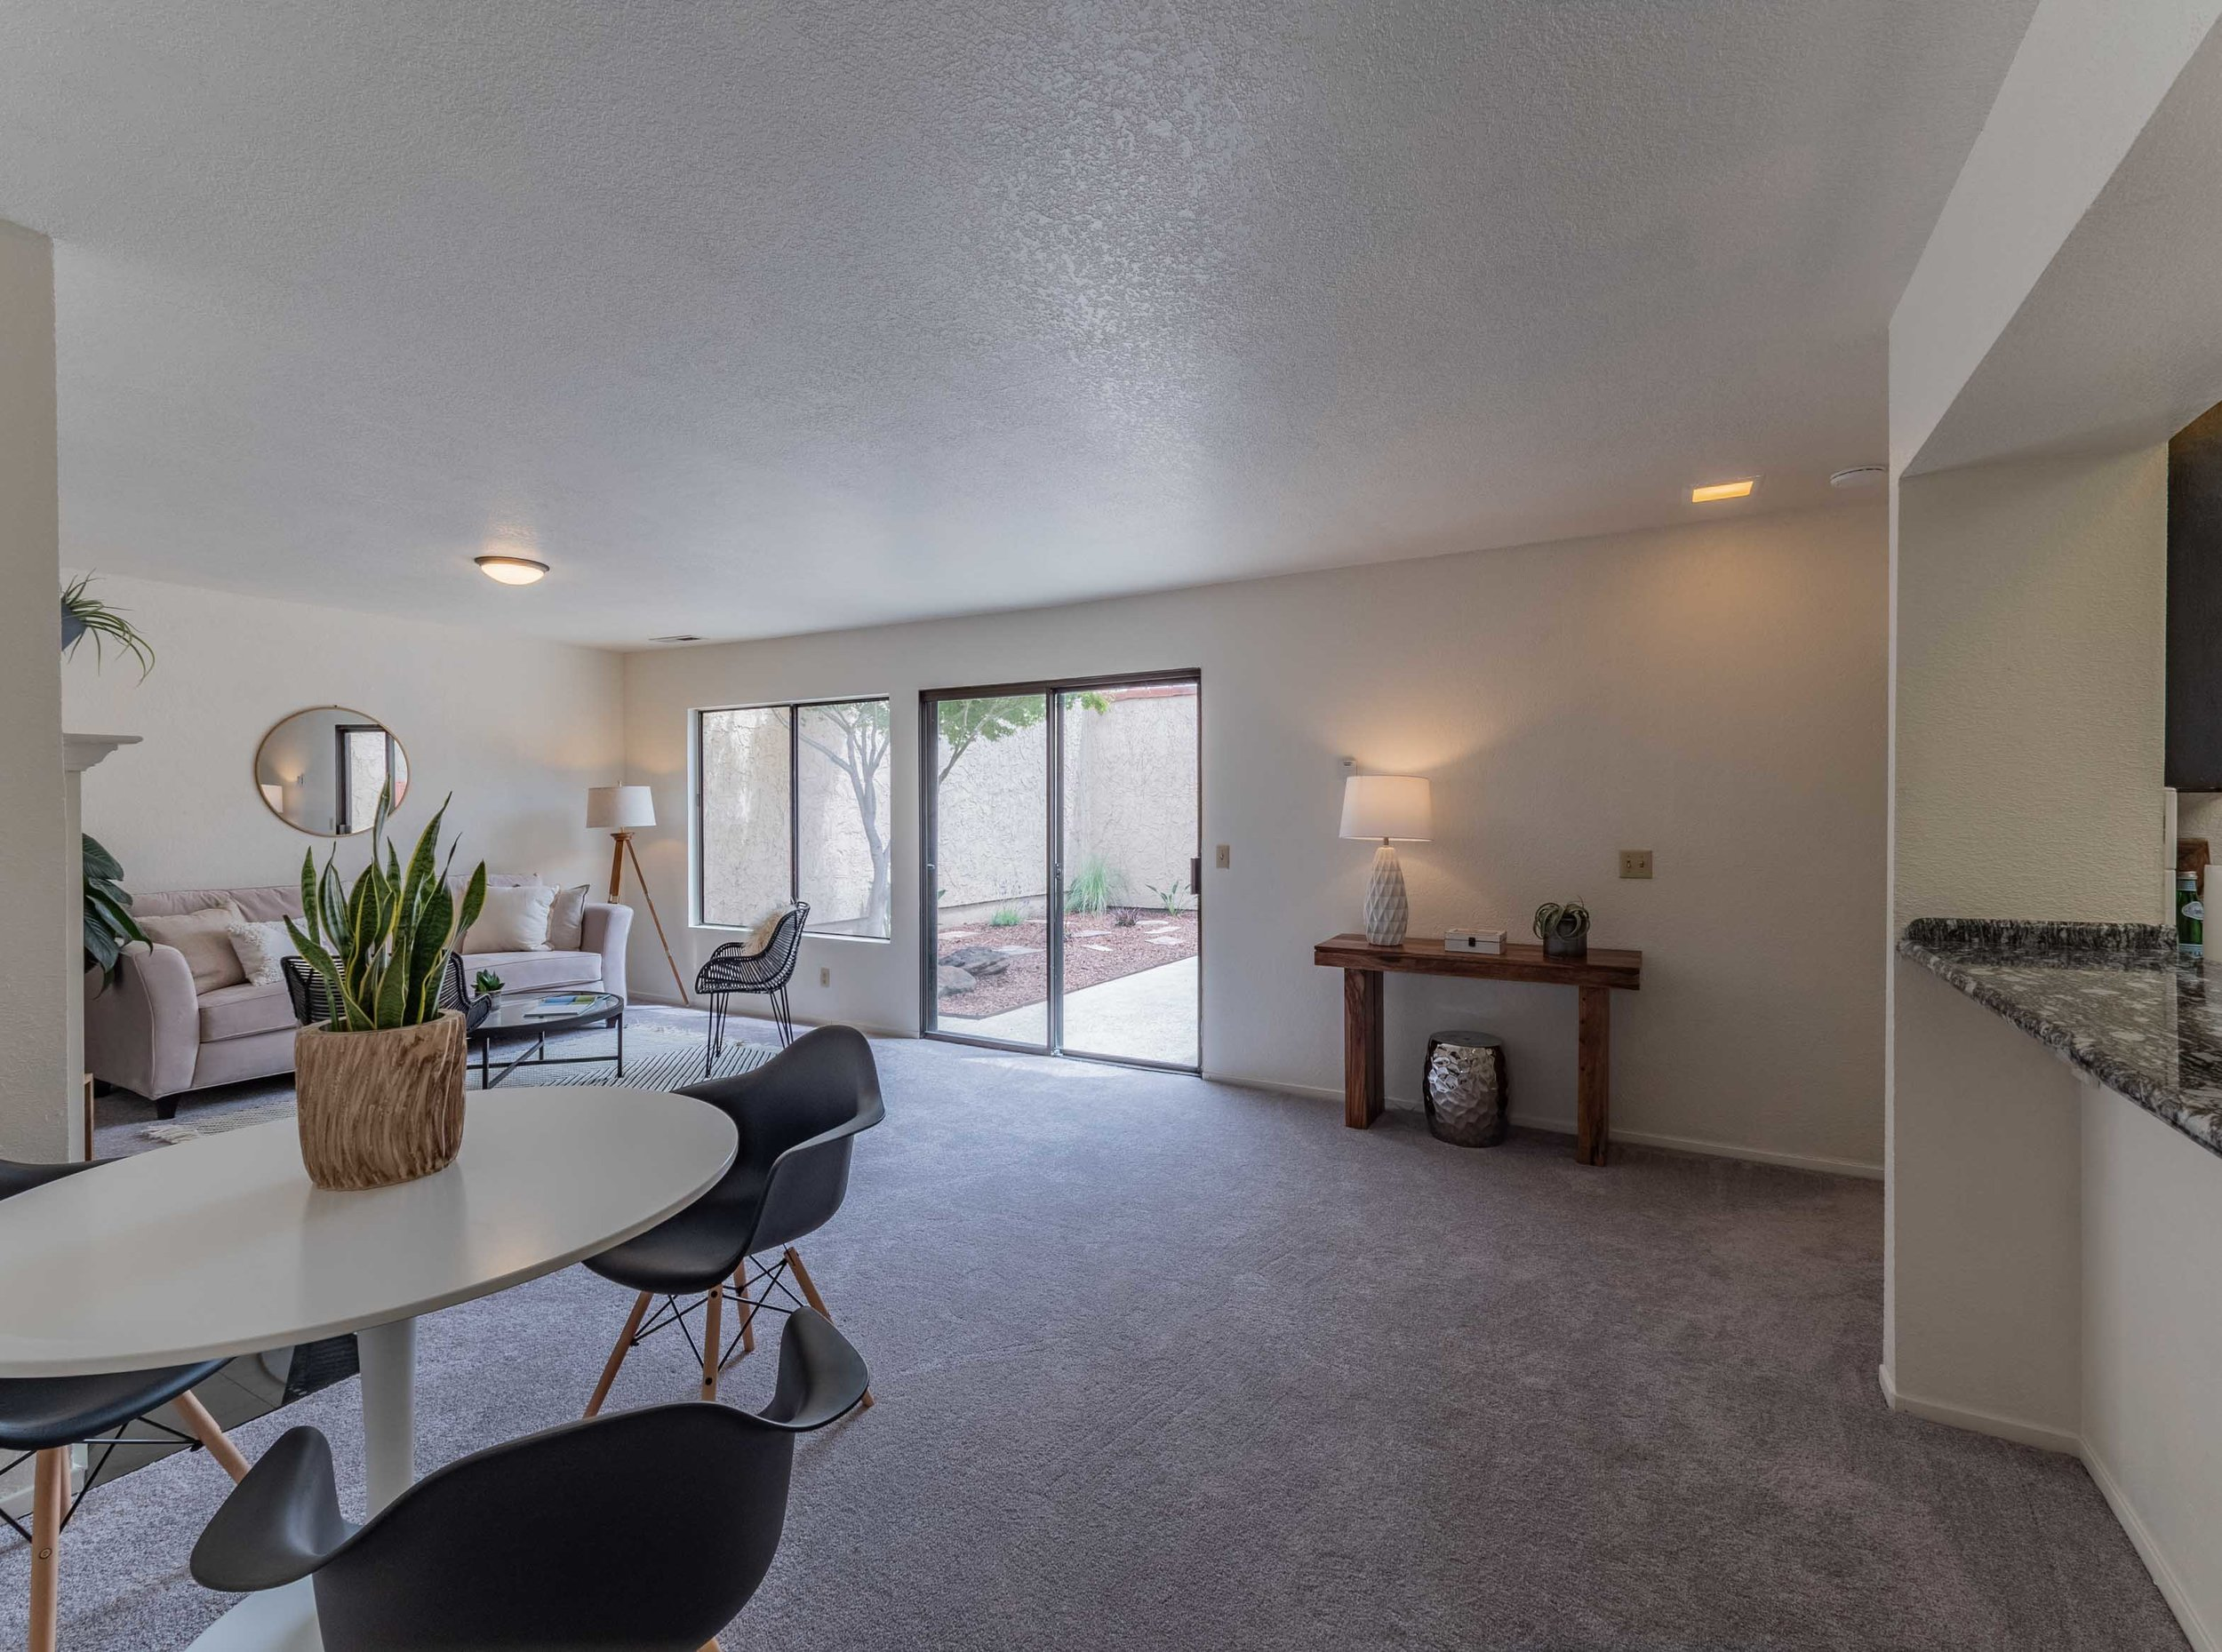 Conveniently located just a stone's throw away from Swift Street Courtyard, this clean single-level home with new paint and carpet, is ready for you to move in! Natural light fills the private courtyard, open living room, and tastefully updated kitchen. The large two-car garage allows for plenty of storage space. Located about a mile from the UCSC entrance, this property has a strong rental history. A great fit for a first time home buyer, growing family, investor, or someone looking for that easy second home⁠—come take advantage of this well-priced property! 